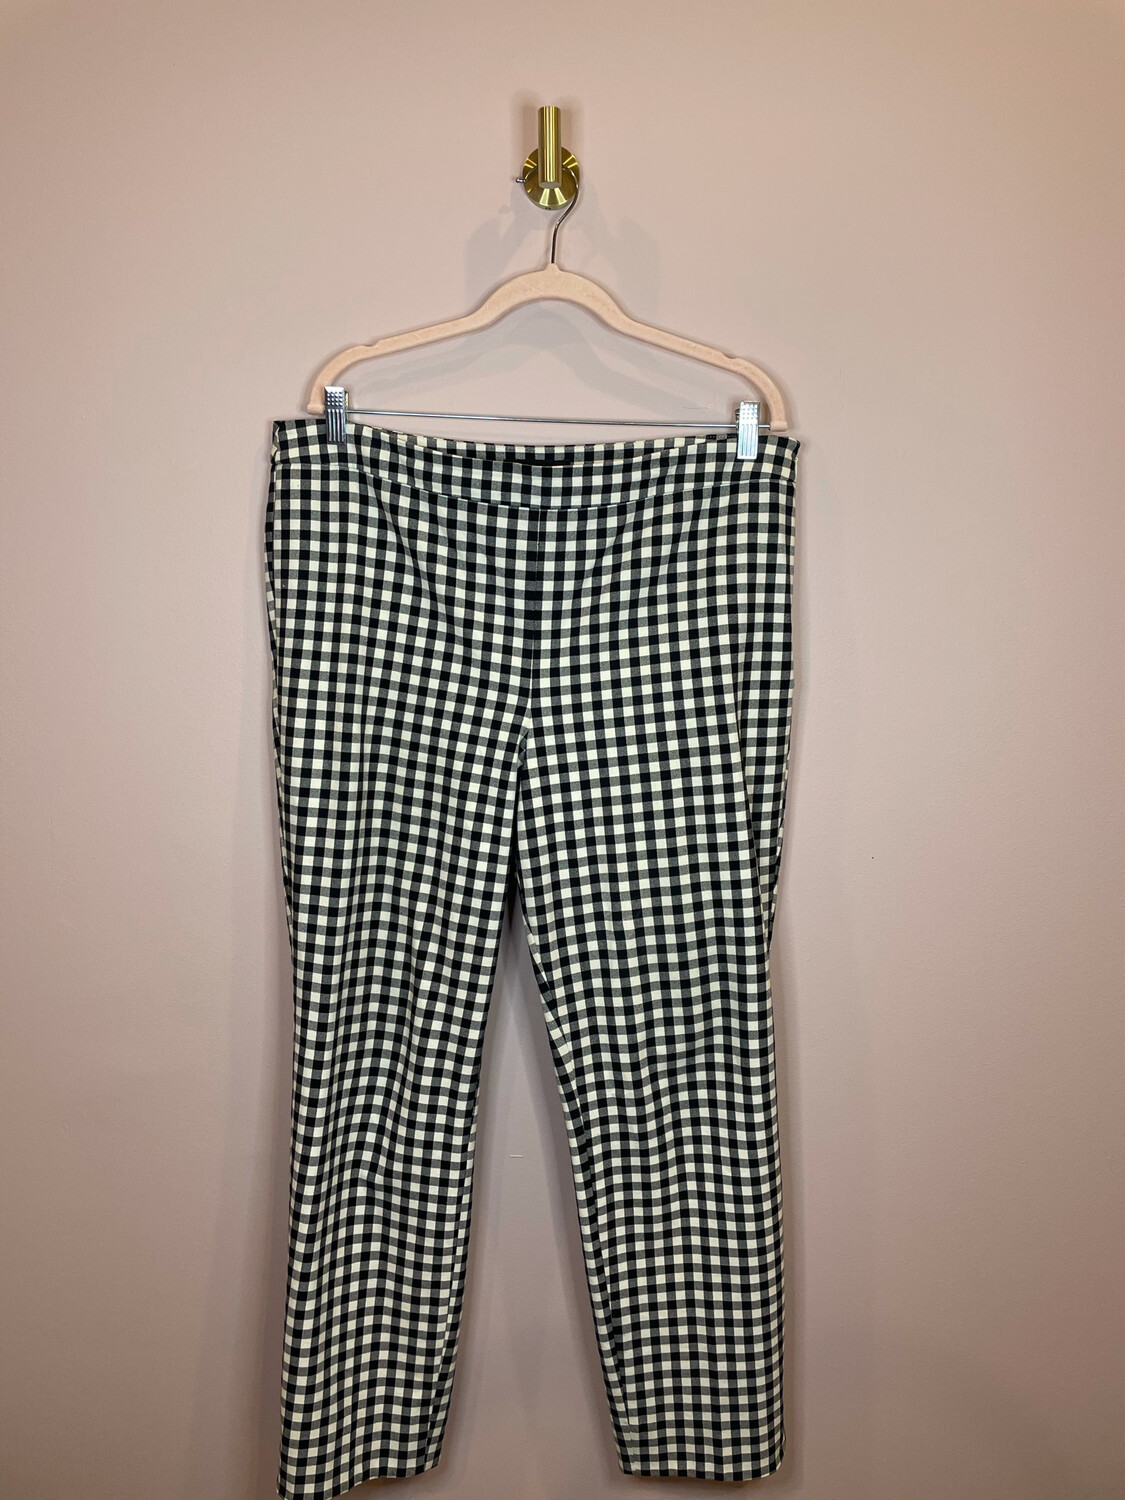 Talbots Black & White Gingham Chatham Ankle Pants - Size 14